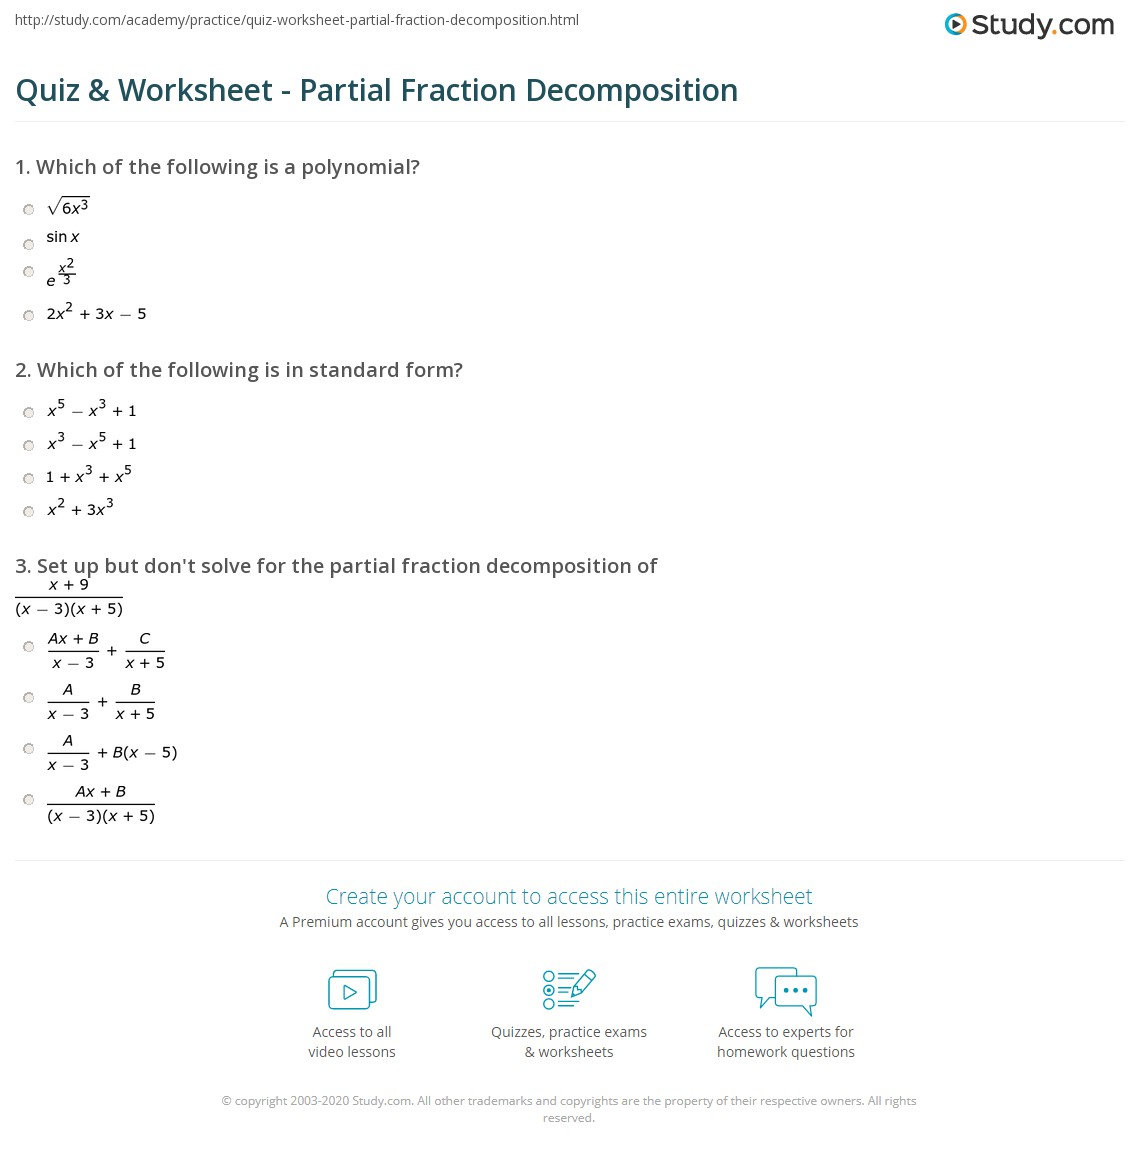 Quiz & Worksheet - Partial Fraction Decomposition | Study.com